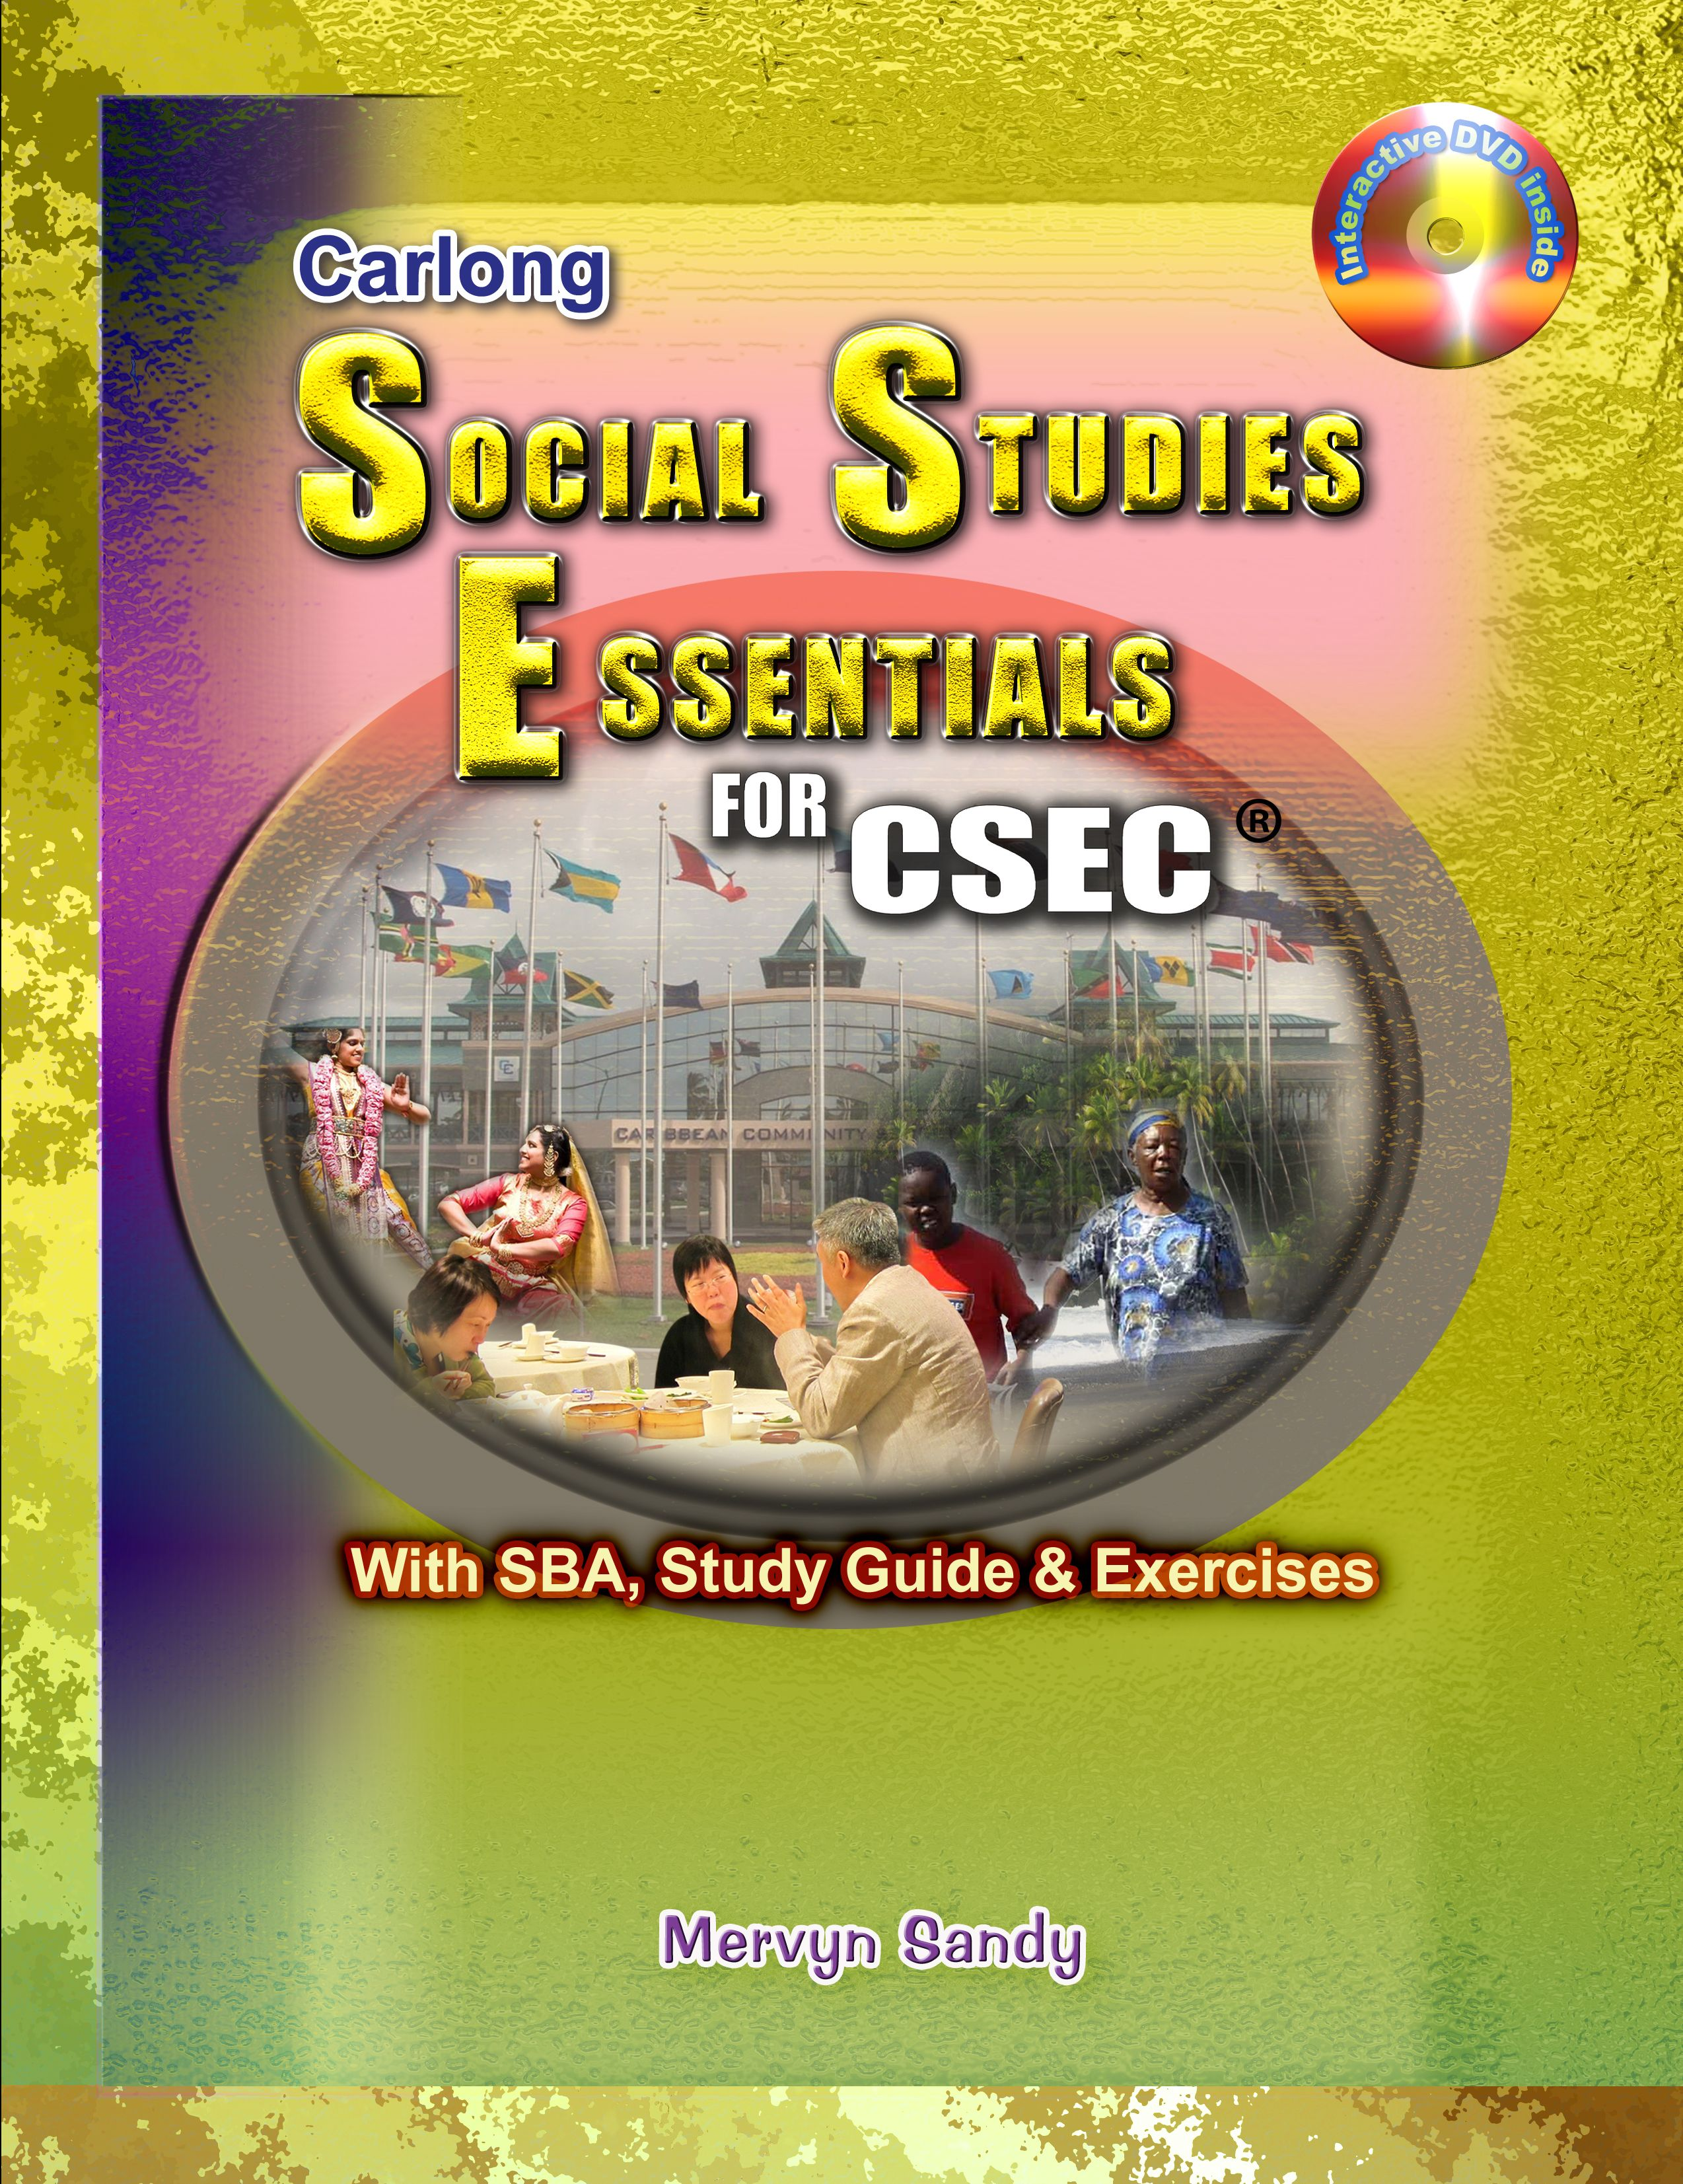 Carlong Social Studies Essentials with SBA, Study Guide & Exercises